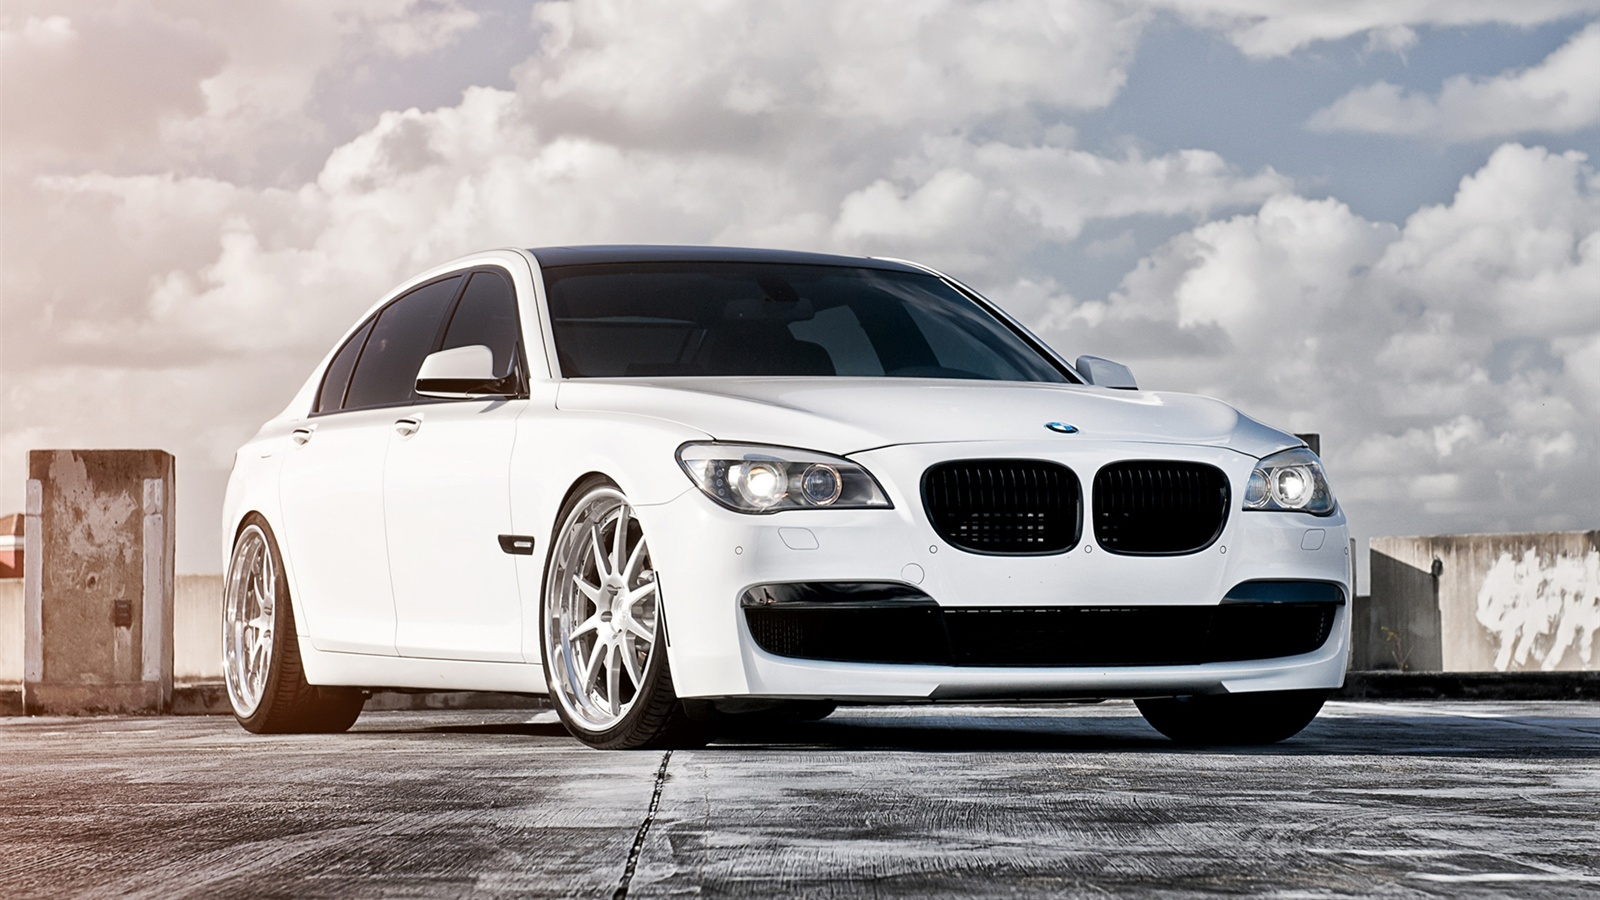 The Best 100 Hd And Qhd Wallpapers From 2015 Works For: Fonds D'écran Télécharger 1600x900 2013 BMW 750 Couleur